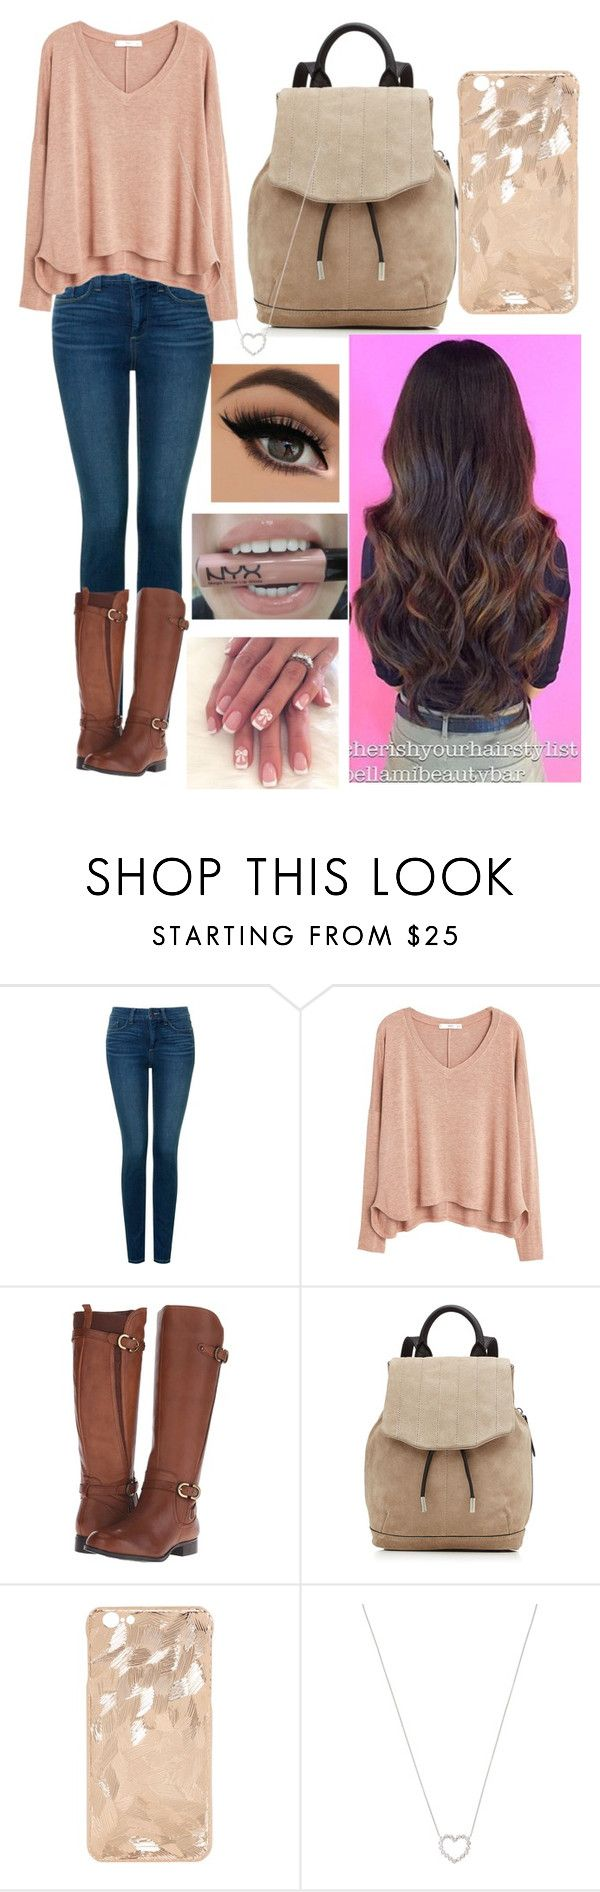 """""""Tori Vega (from Victorious) inspired outfit"""" by x1dlover4everx ❤ liked on Polyvore featuring NYDJ, MANGO, Naturalizer, rag & bone, Tiffany & Co. and NYX"""